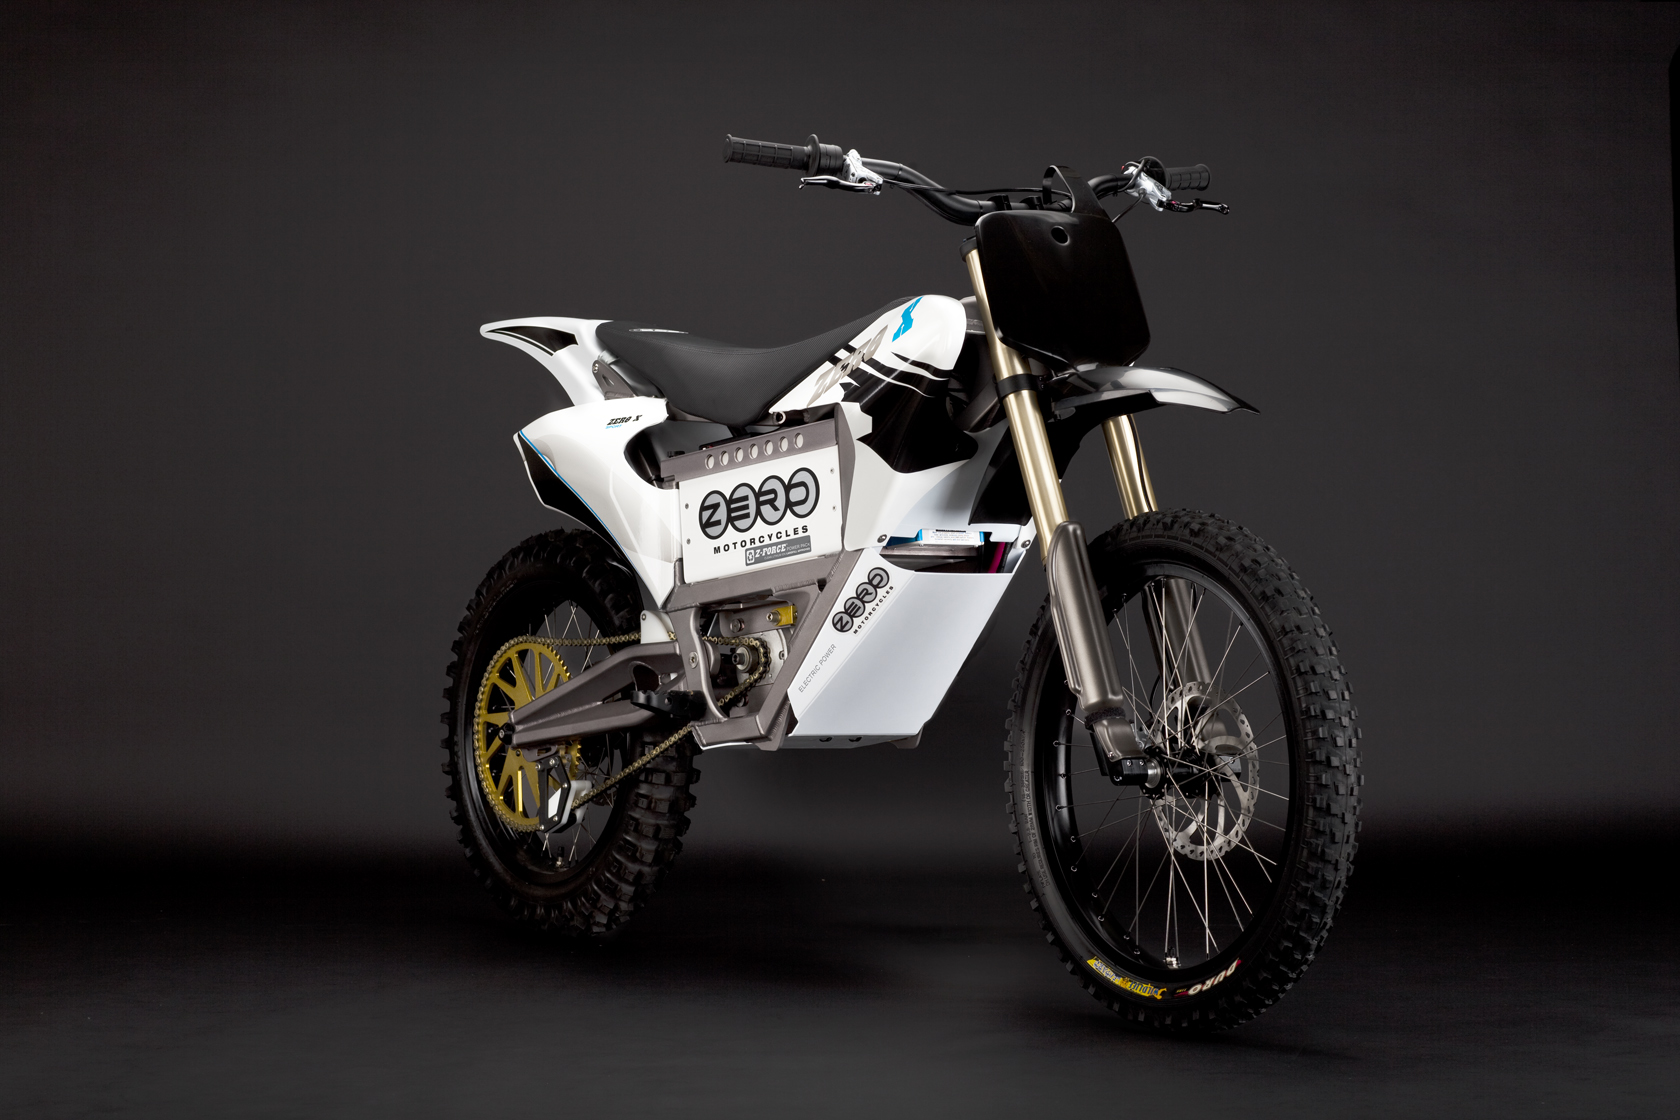 2010 Zero X Electric Motorcycle: Blue Angle